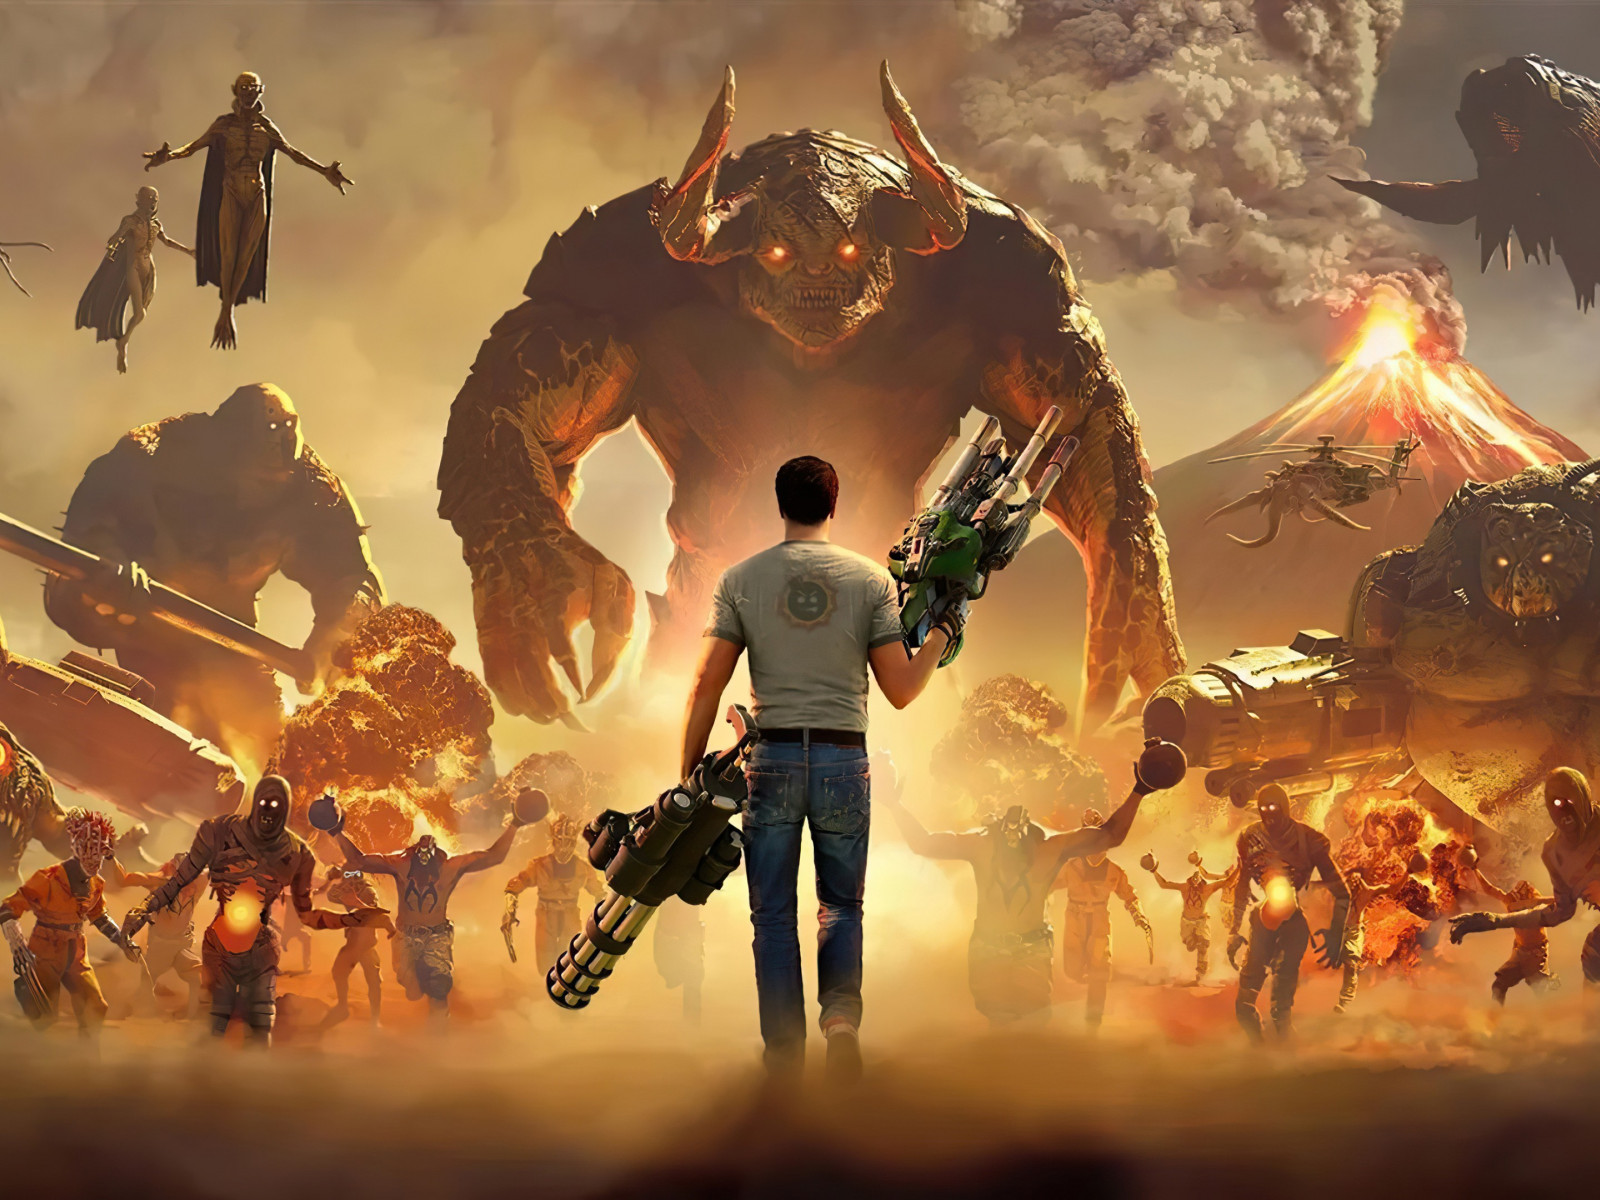 Serious Sam 4 wallpaper 1600x1200